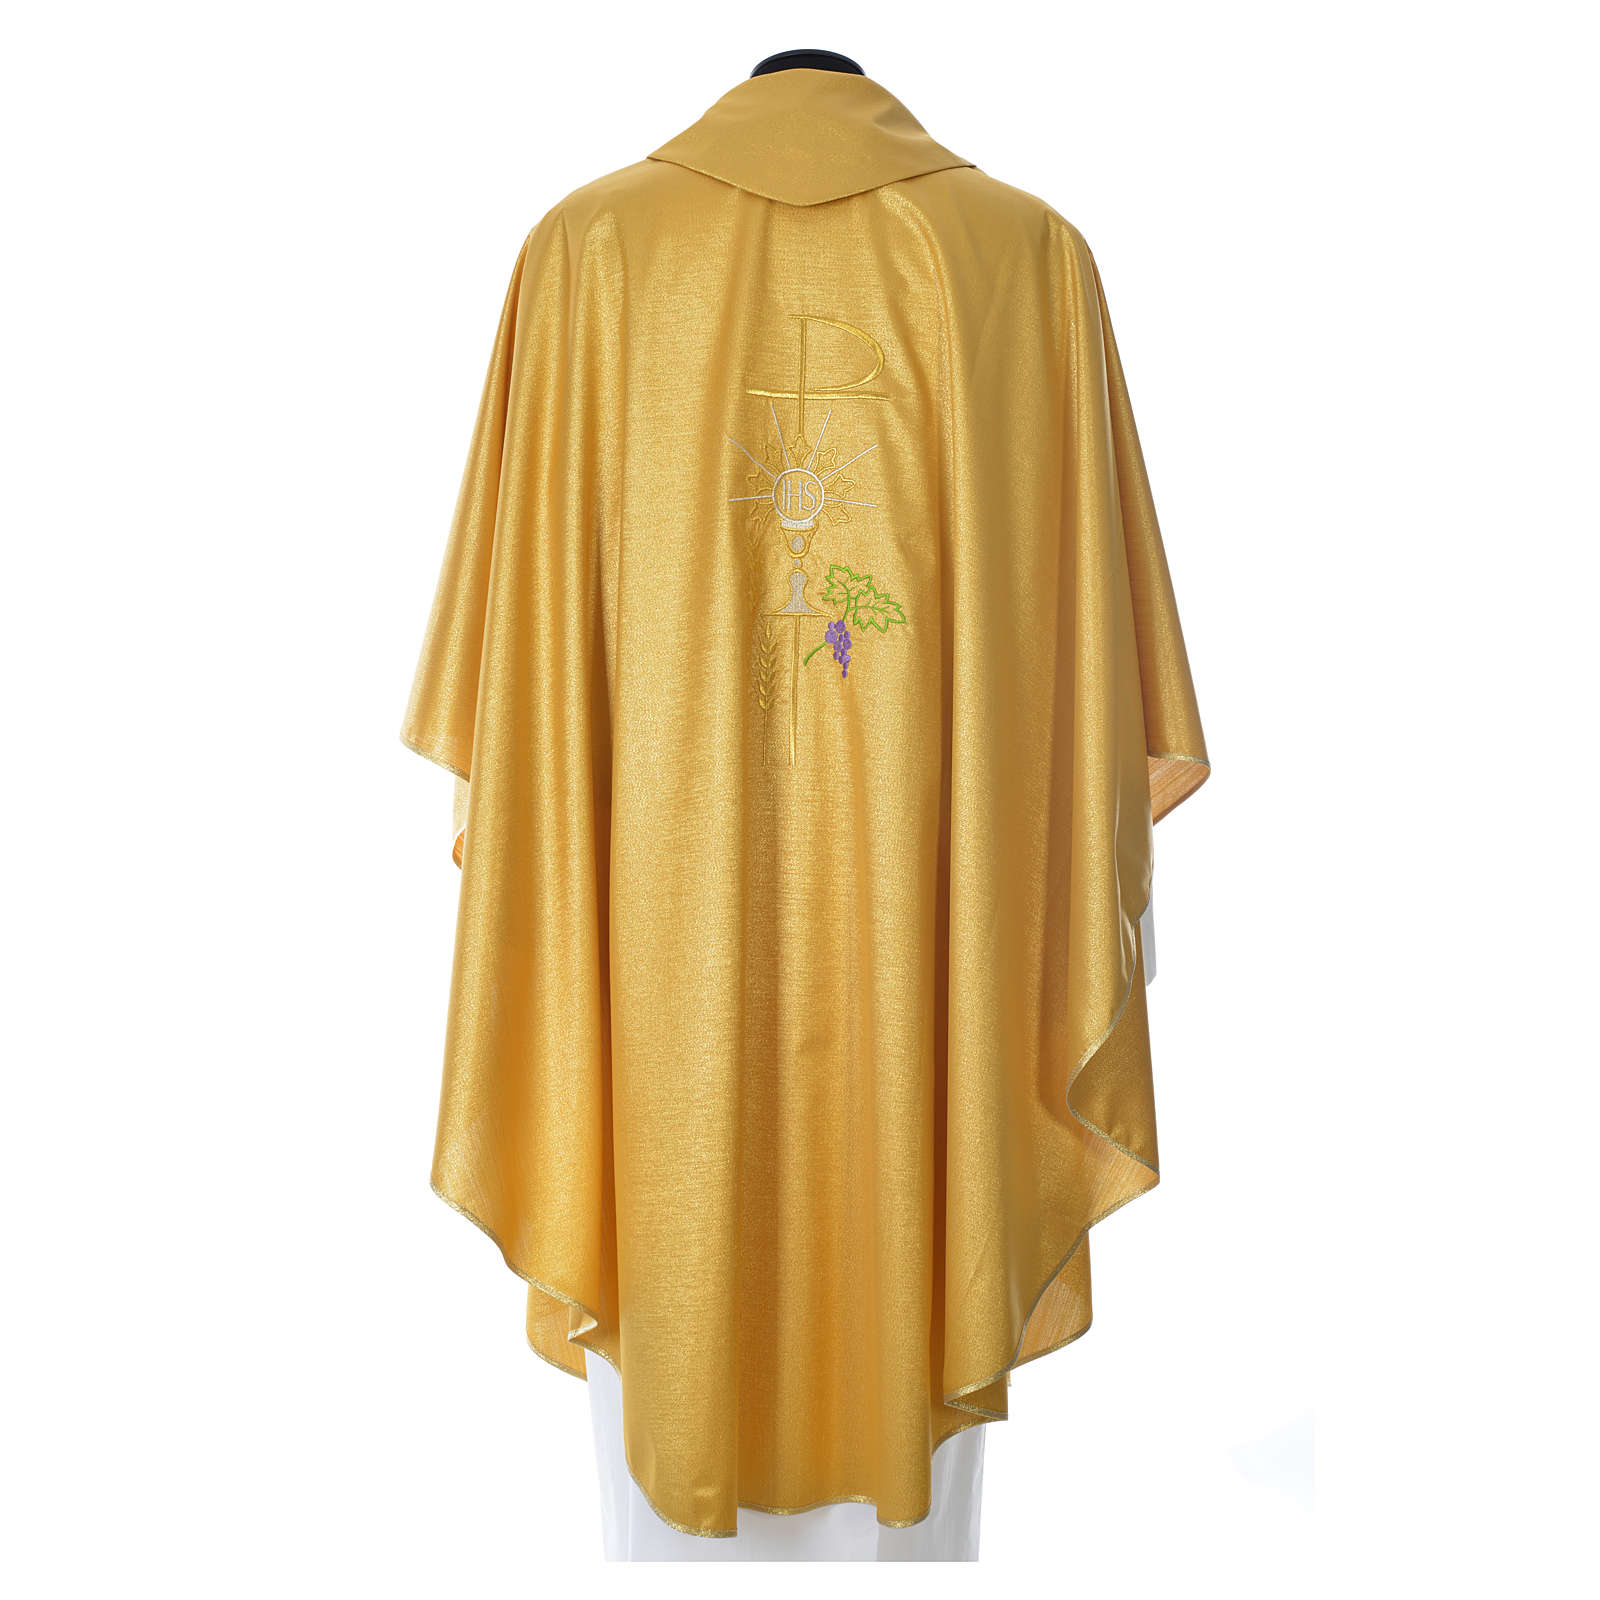 Gold Chasuble in wool and lurex with Chi-Rho, monstrance, wheat 4